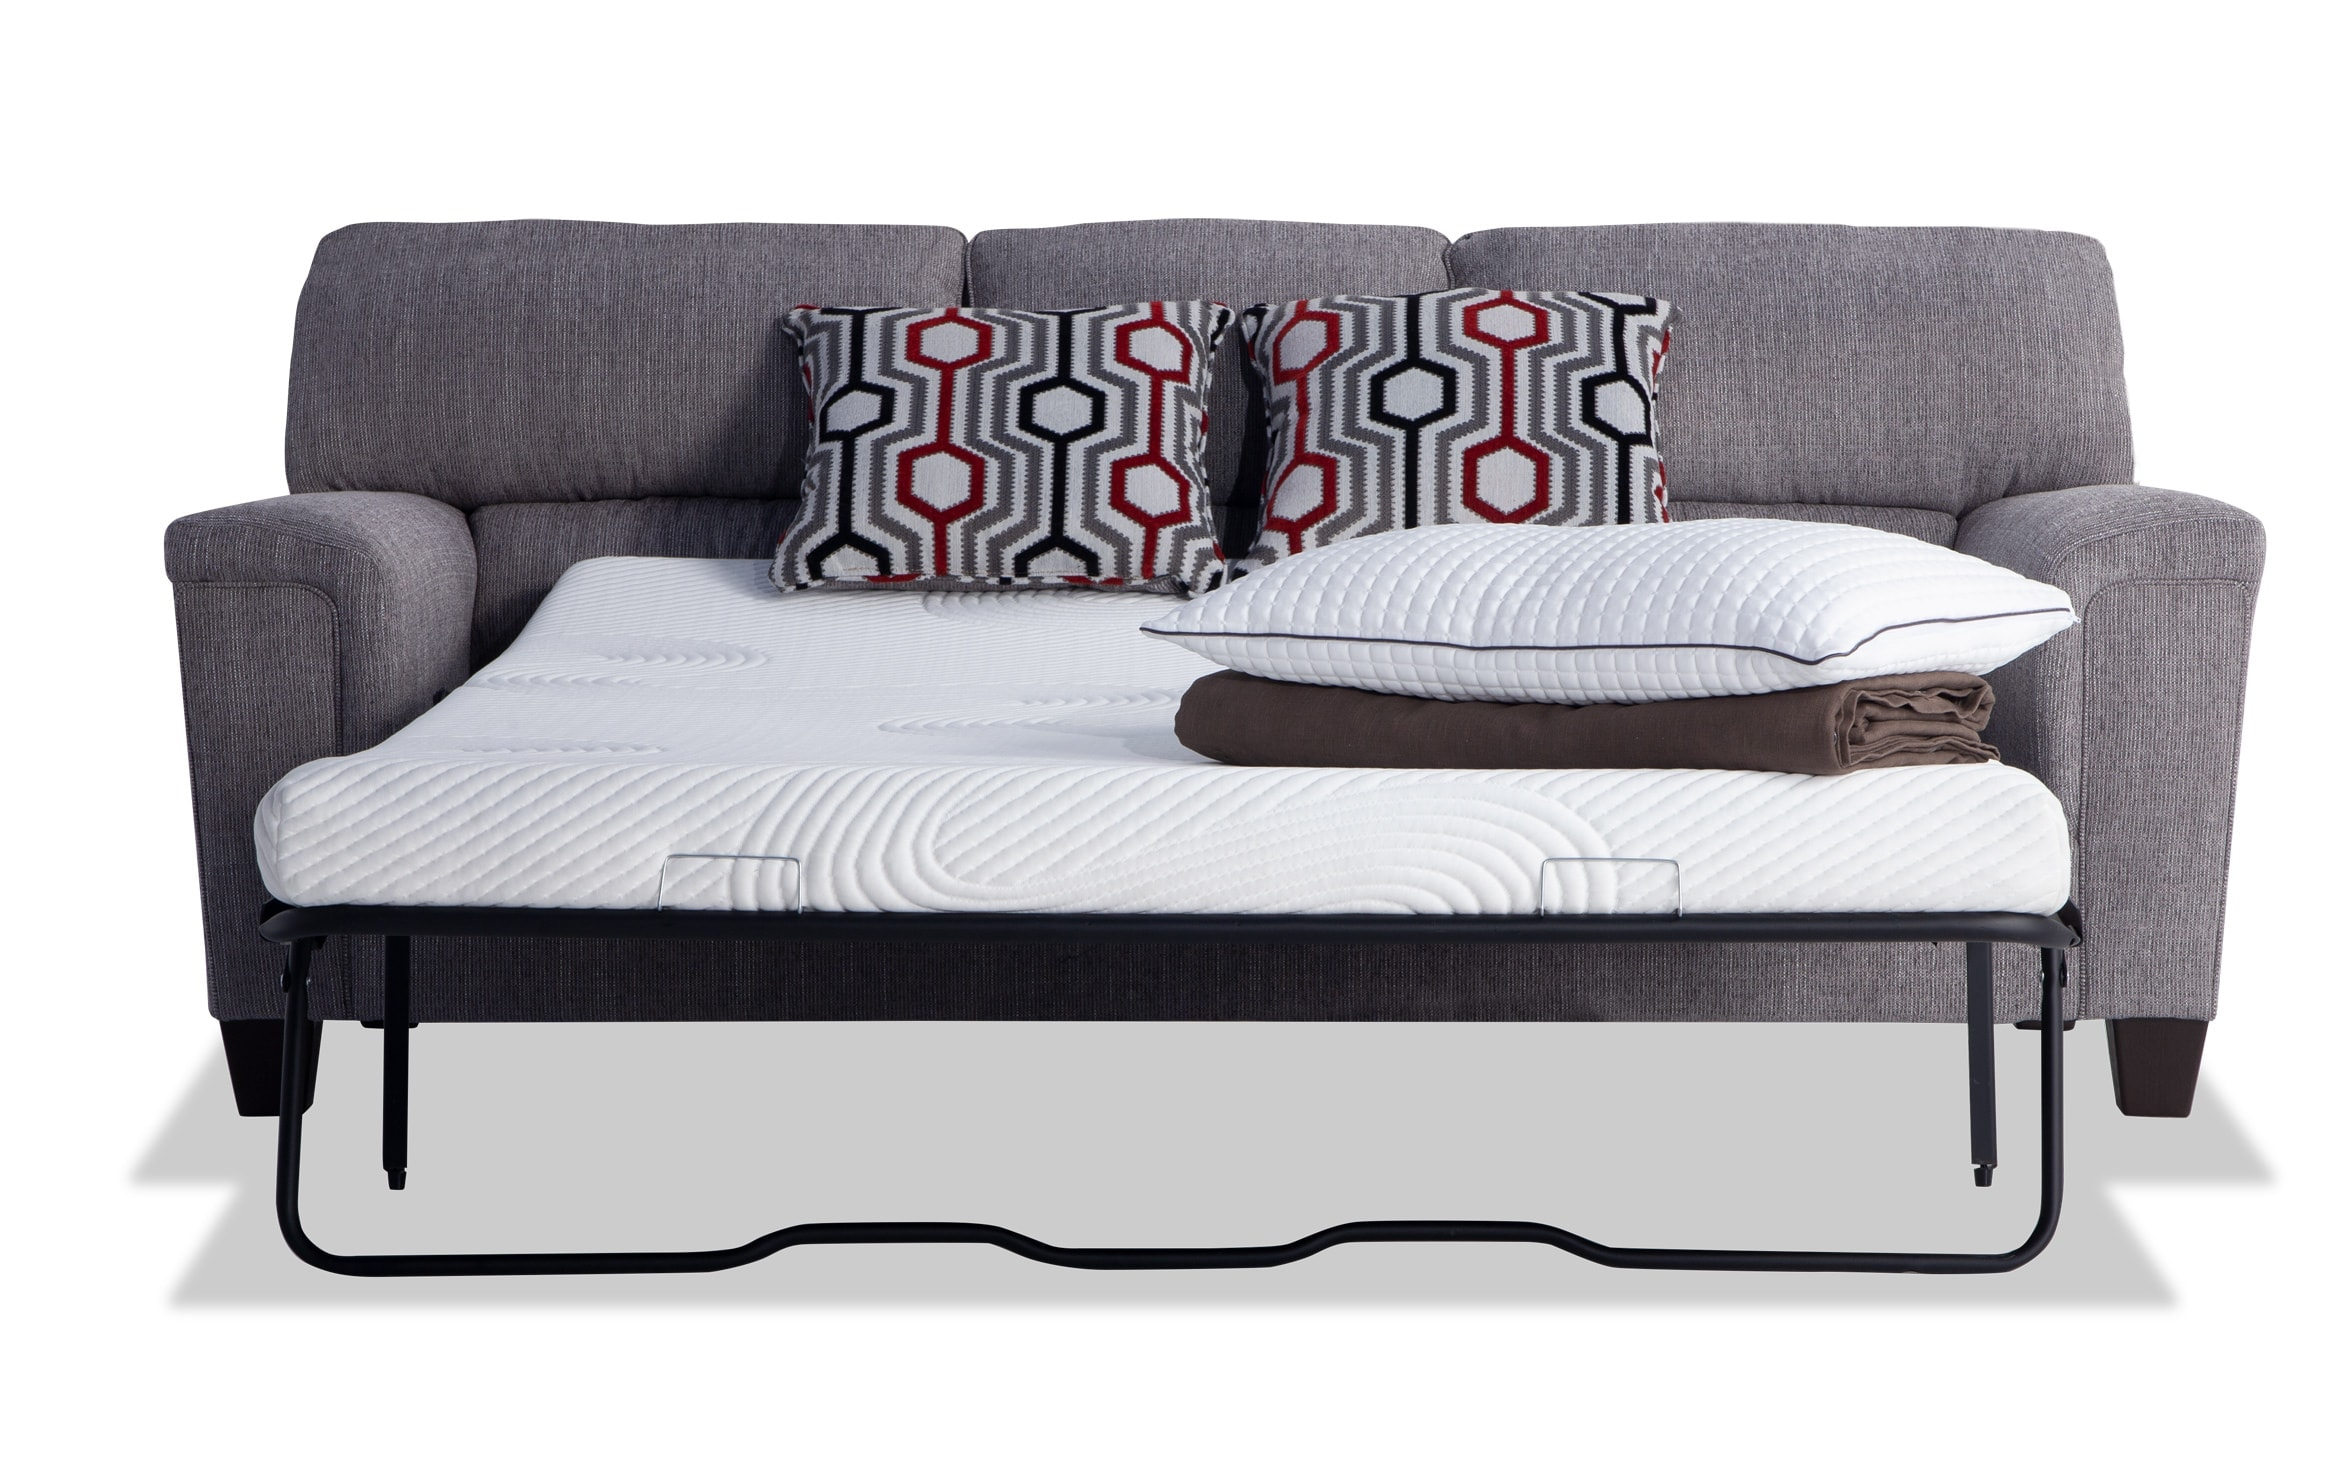 - Calvin Concrete Gray Bob-O-Pedic Queen Sleeper Sofa Bobs.com